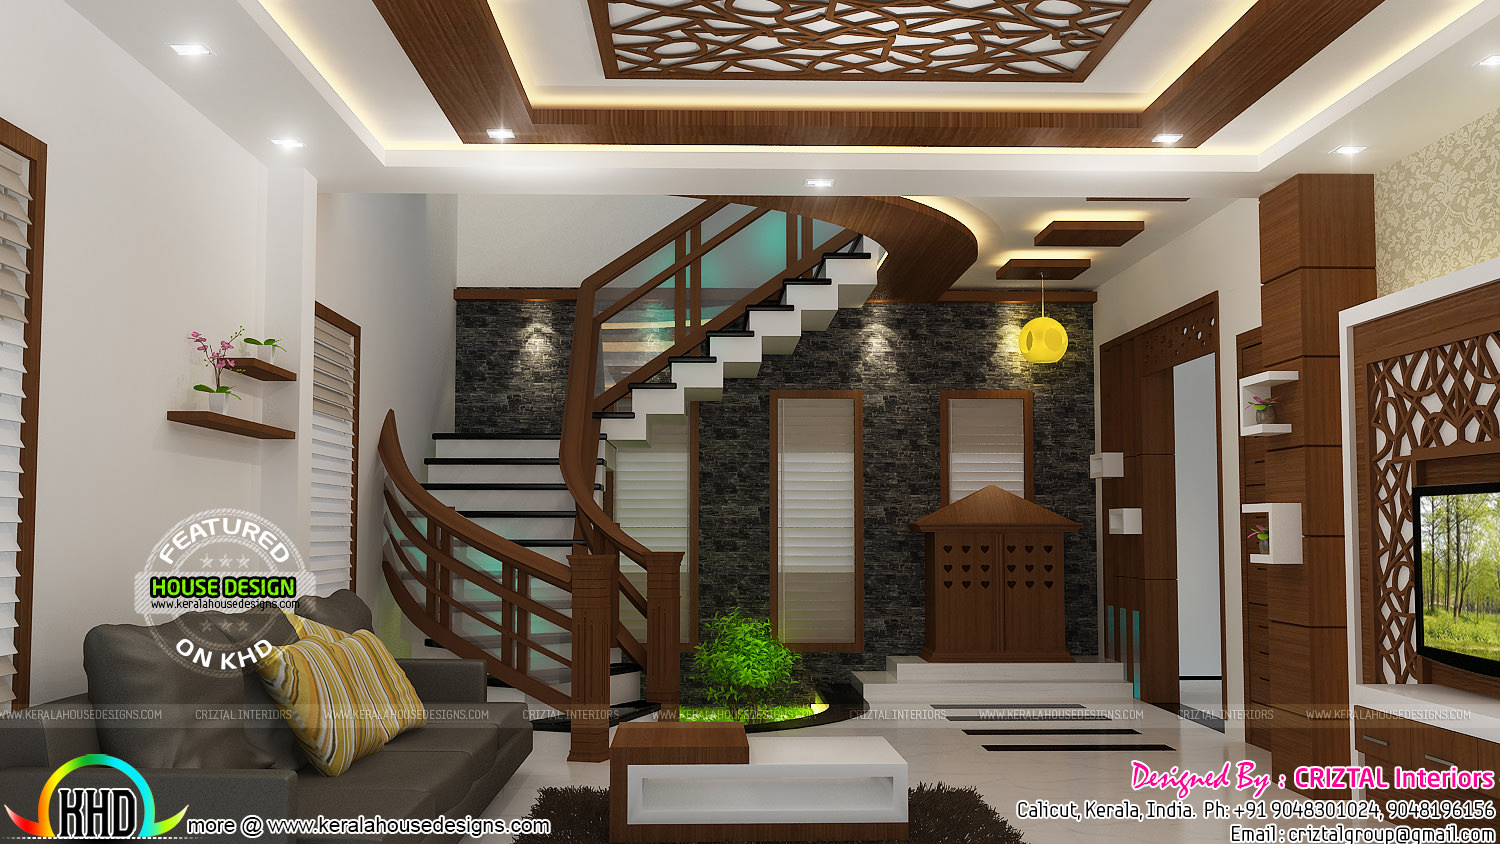 Bedroom dining hall and living interior kerala home for Interior design for hall and dining room